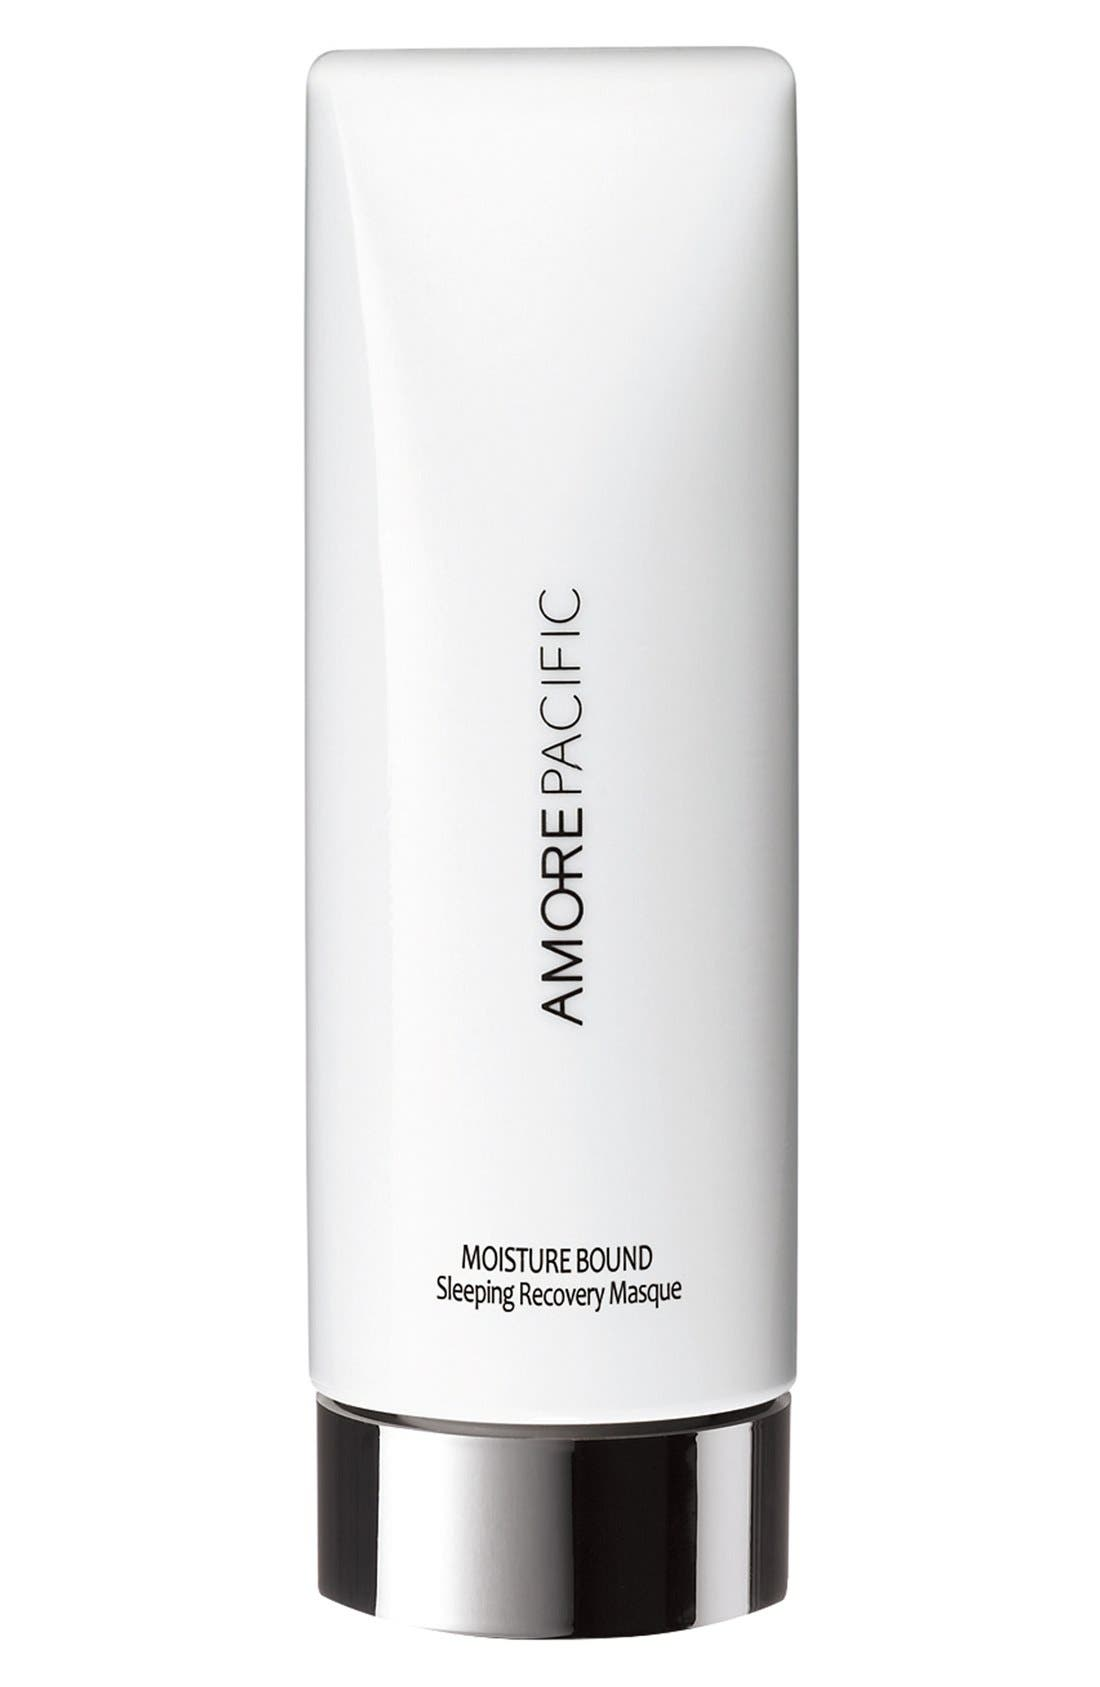 AMOREPACIFIC 'Moisture Bound' Sleeping Recovery Masque